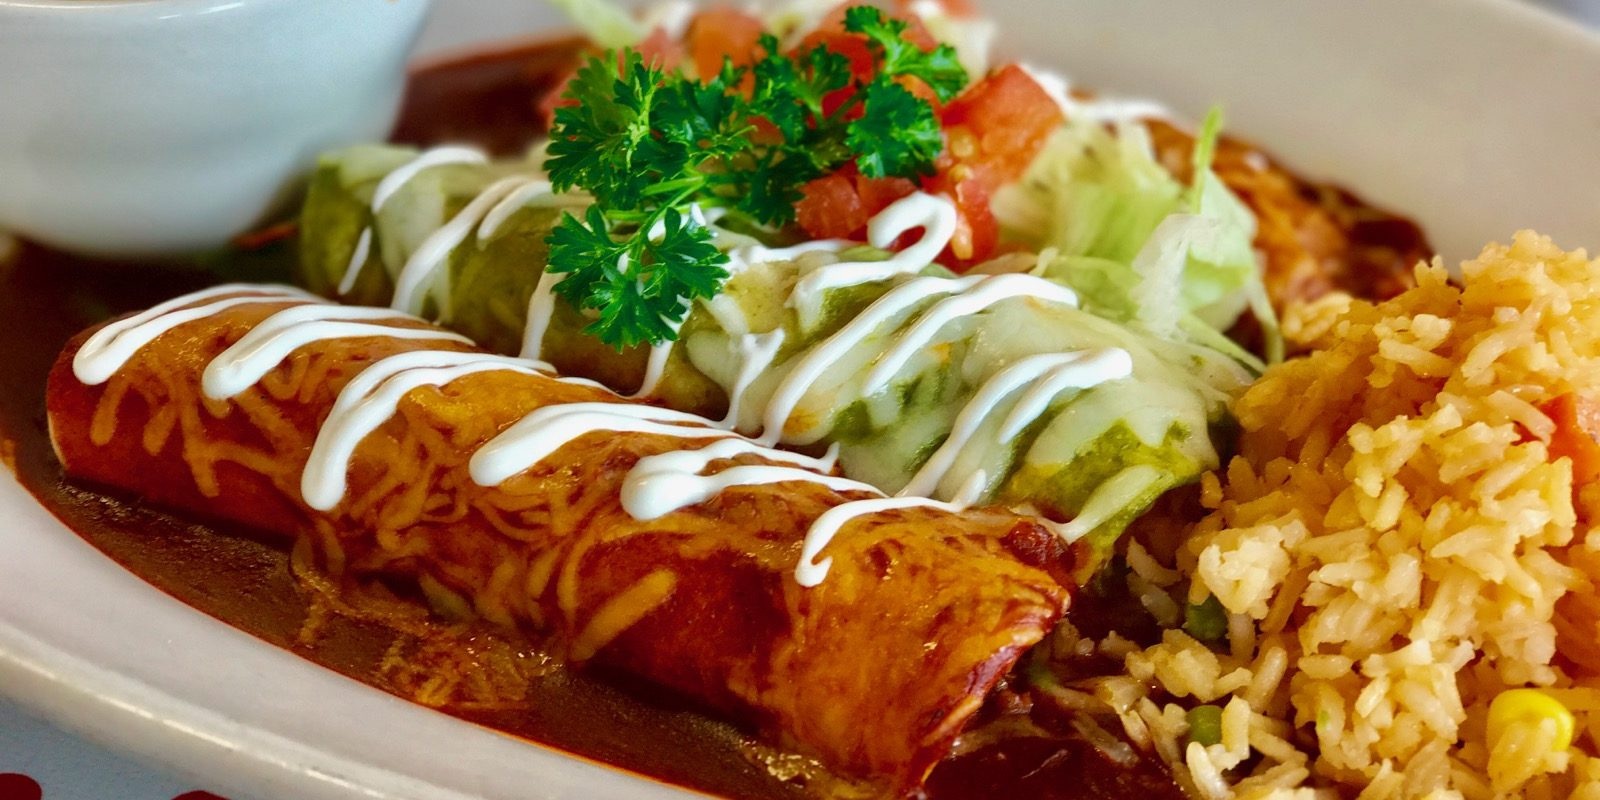 Best Mexican Restaurants In The Woodlands